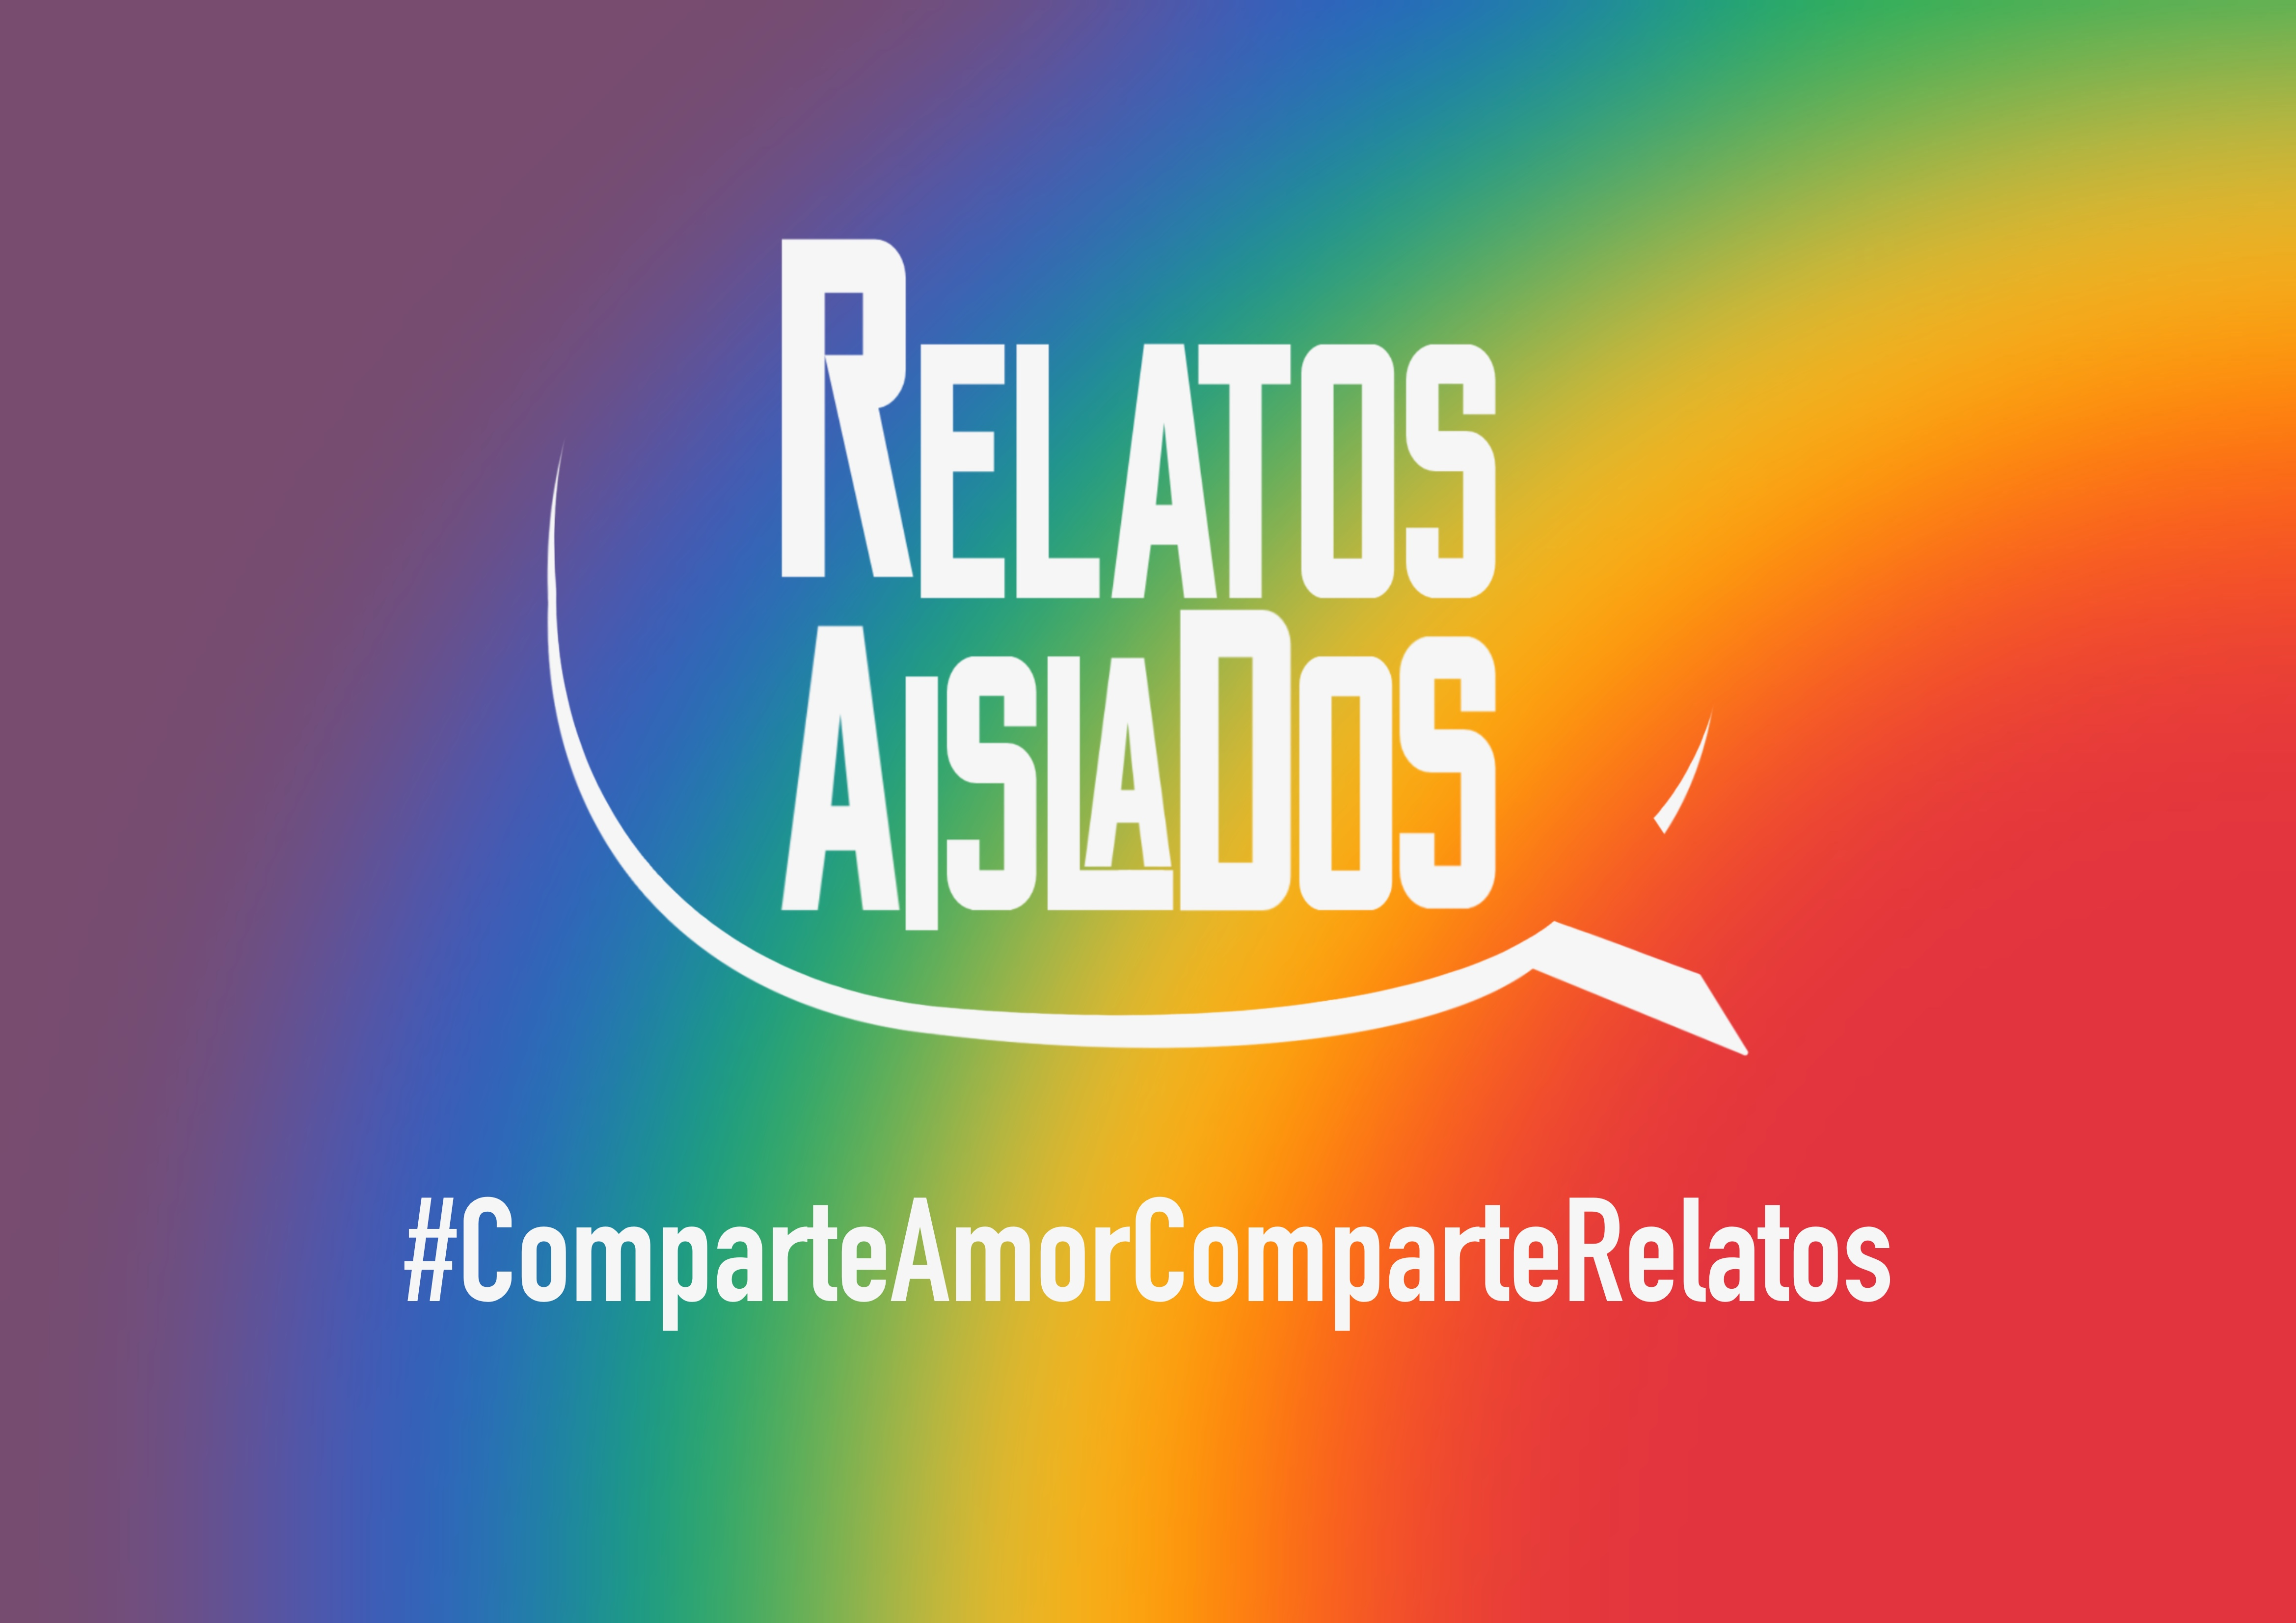 ComparteAmorComparteRelatos